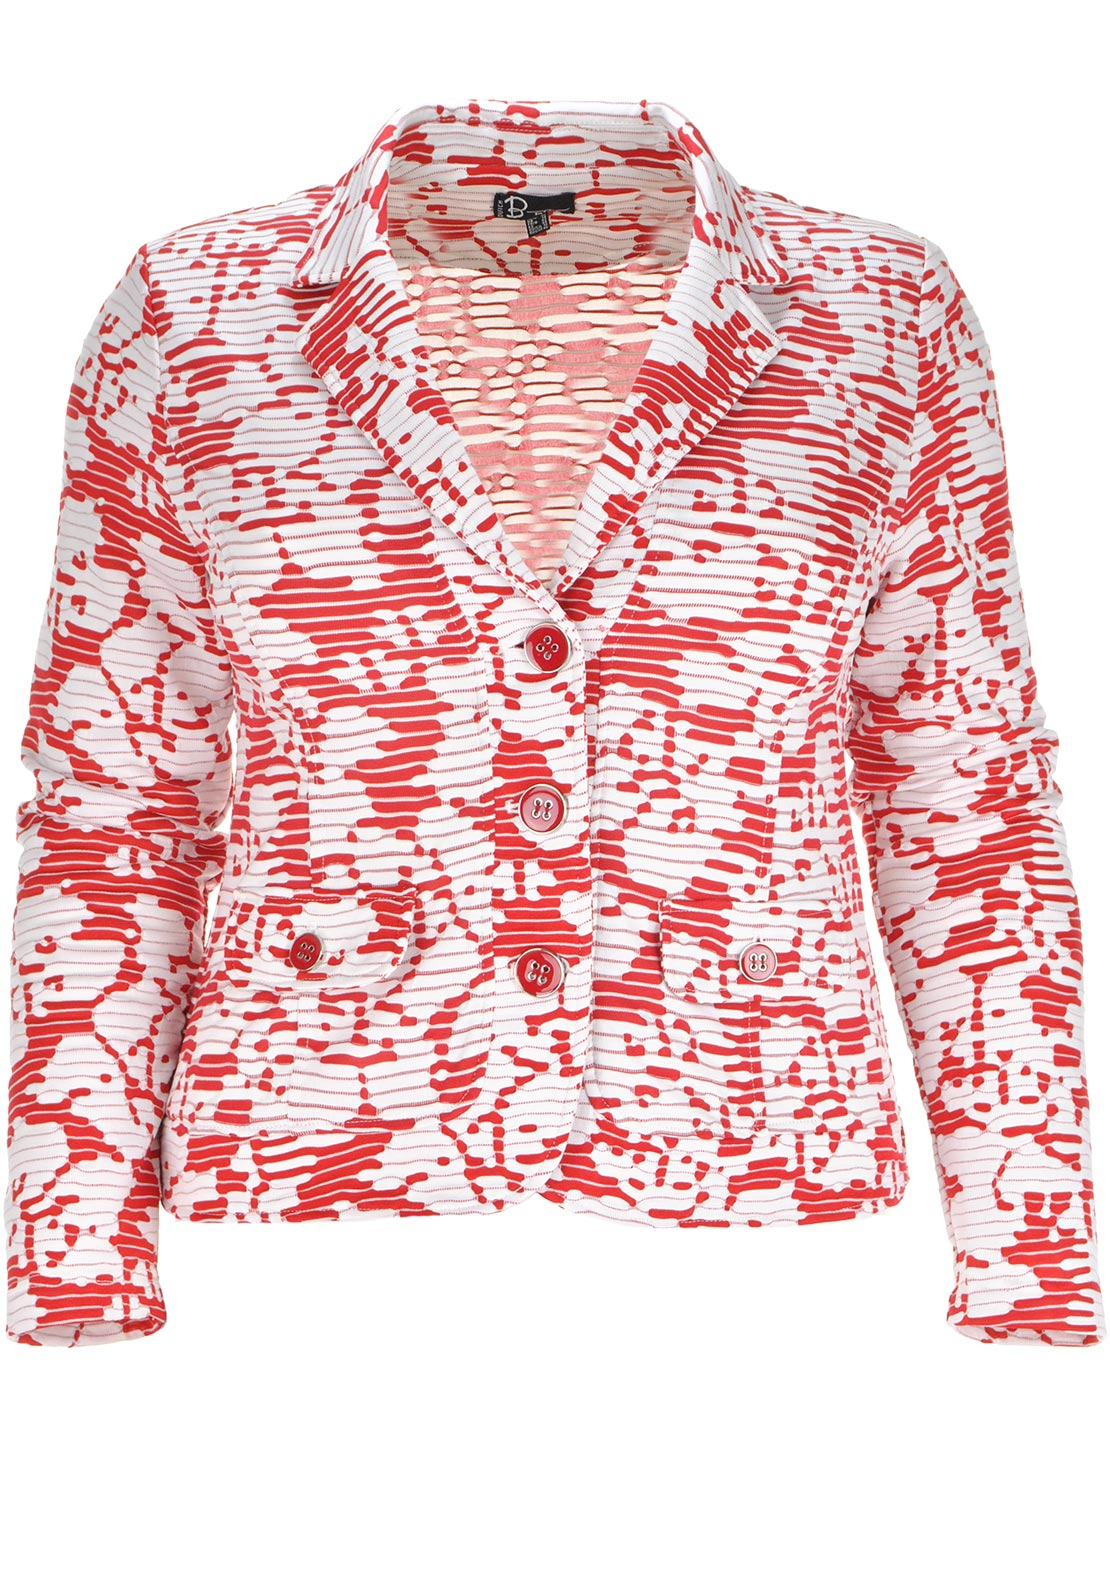 Dutch B by Oscar Digital Print Jersey Blazer Jacket, Red and White